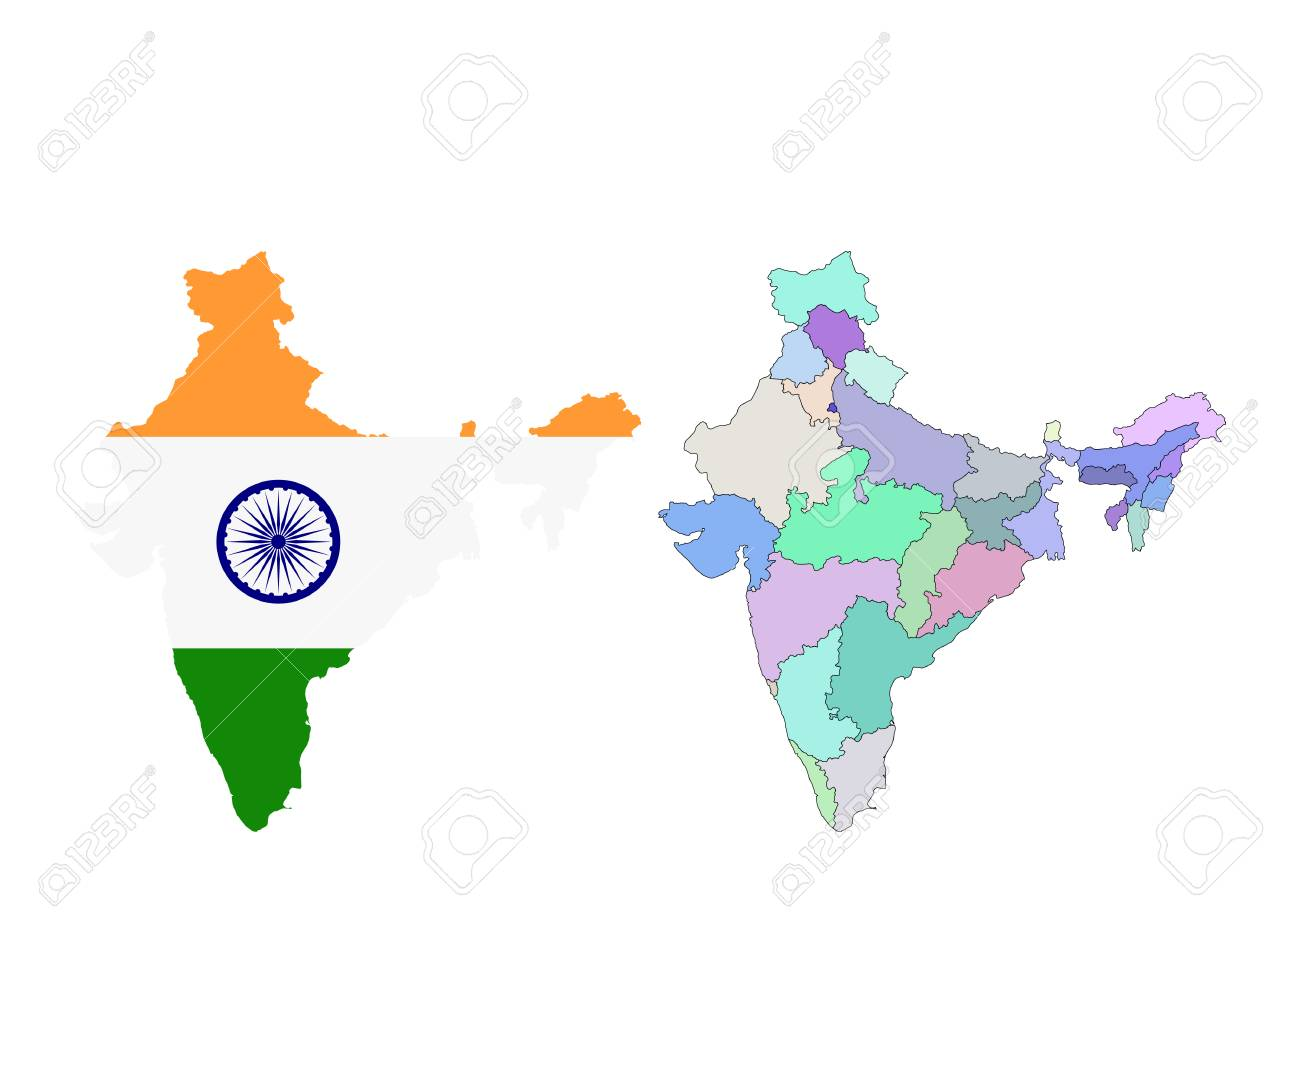 Vector   Vector Map Of India With The States Colored In Bright Colors And  National Flag. India Map. Isolated On White.